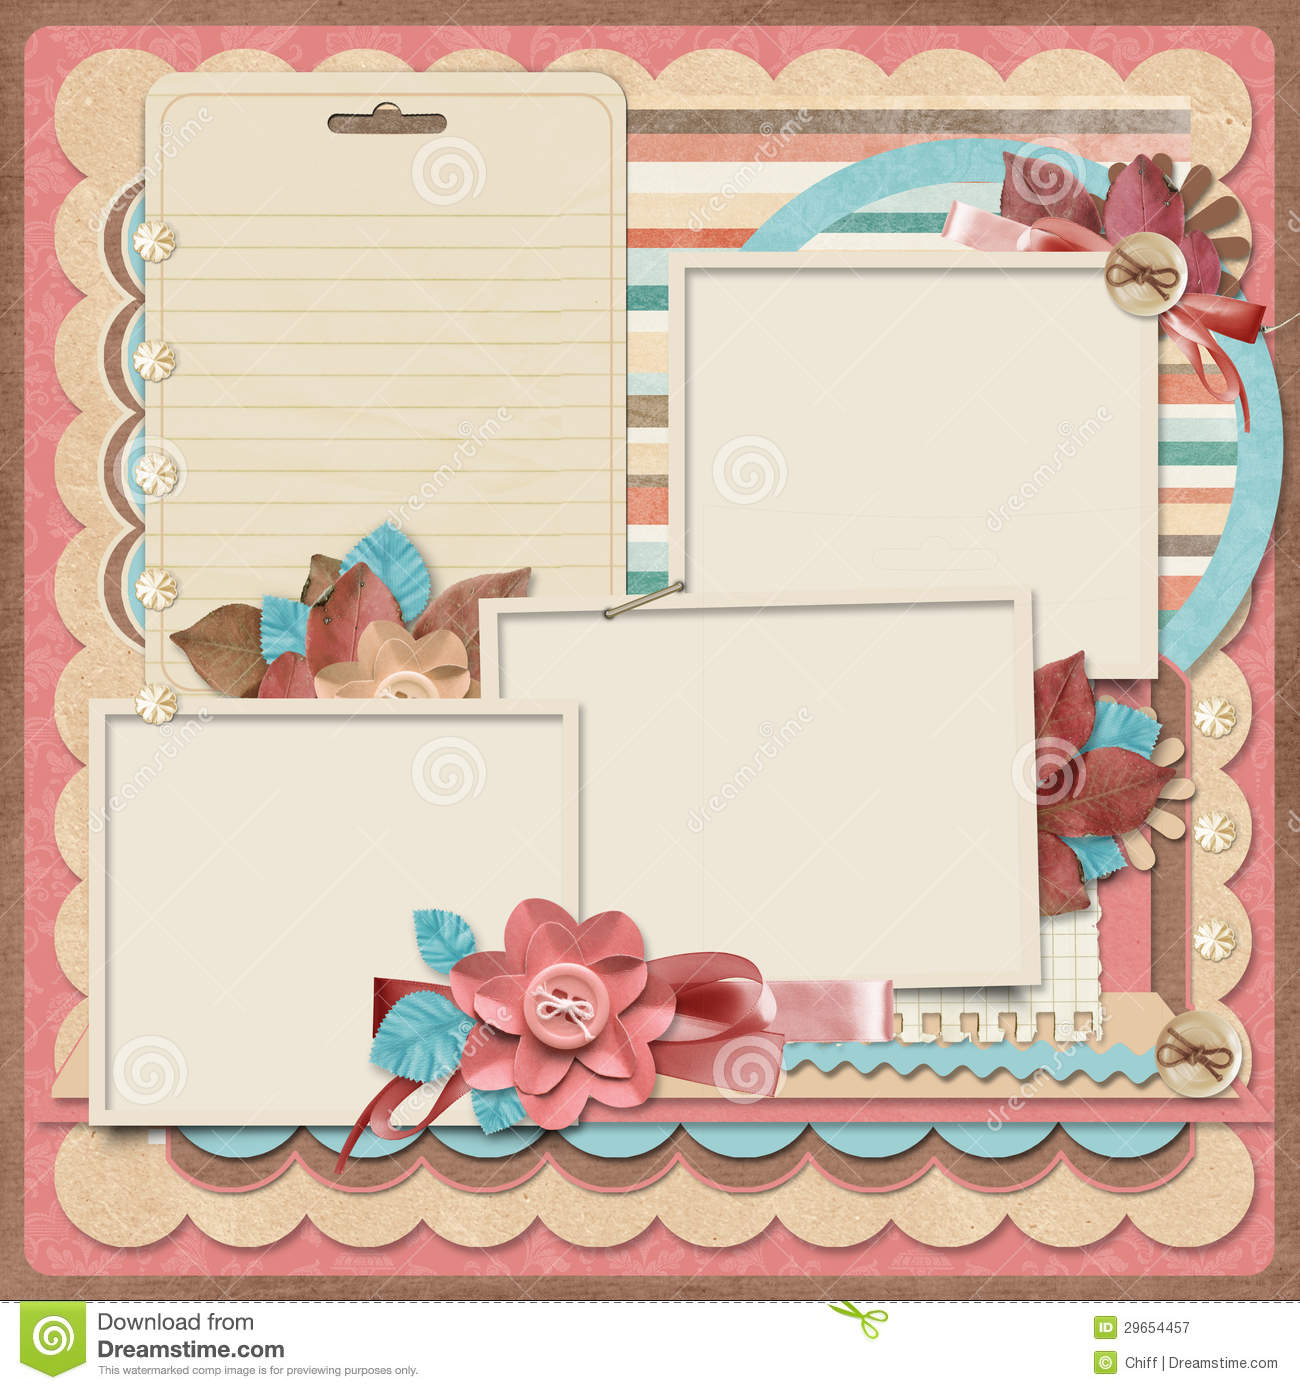 Retro family project scrapbooking templates for Templates for scrapbooking to print